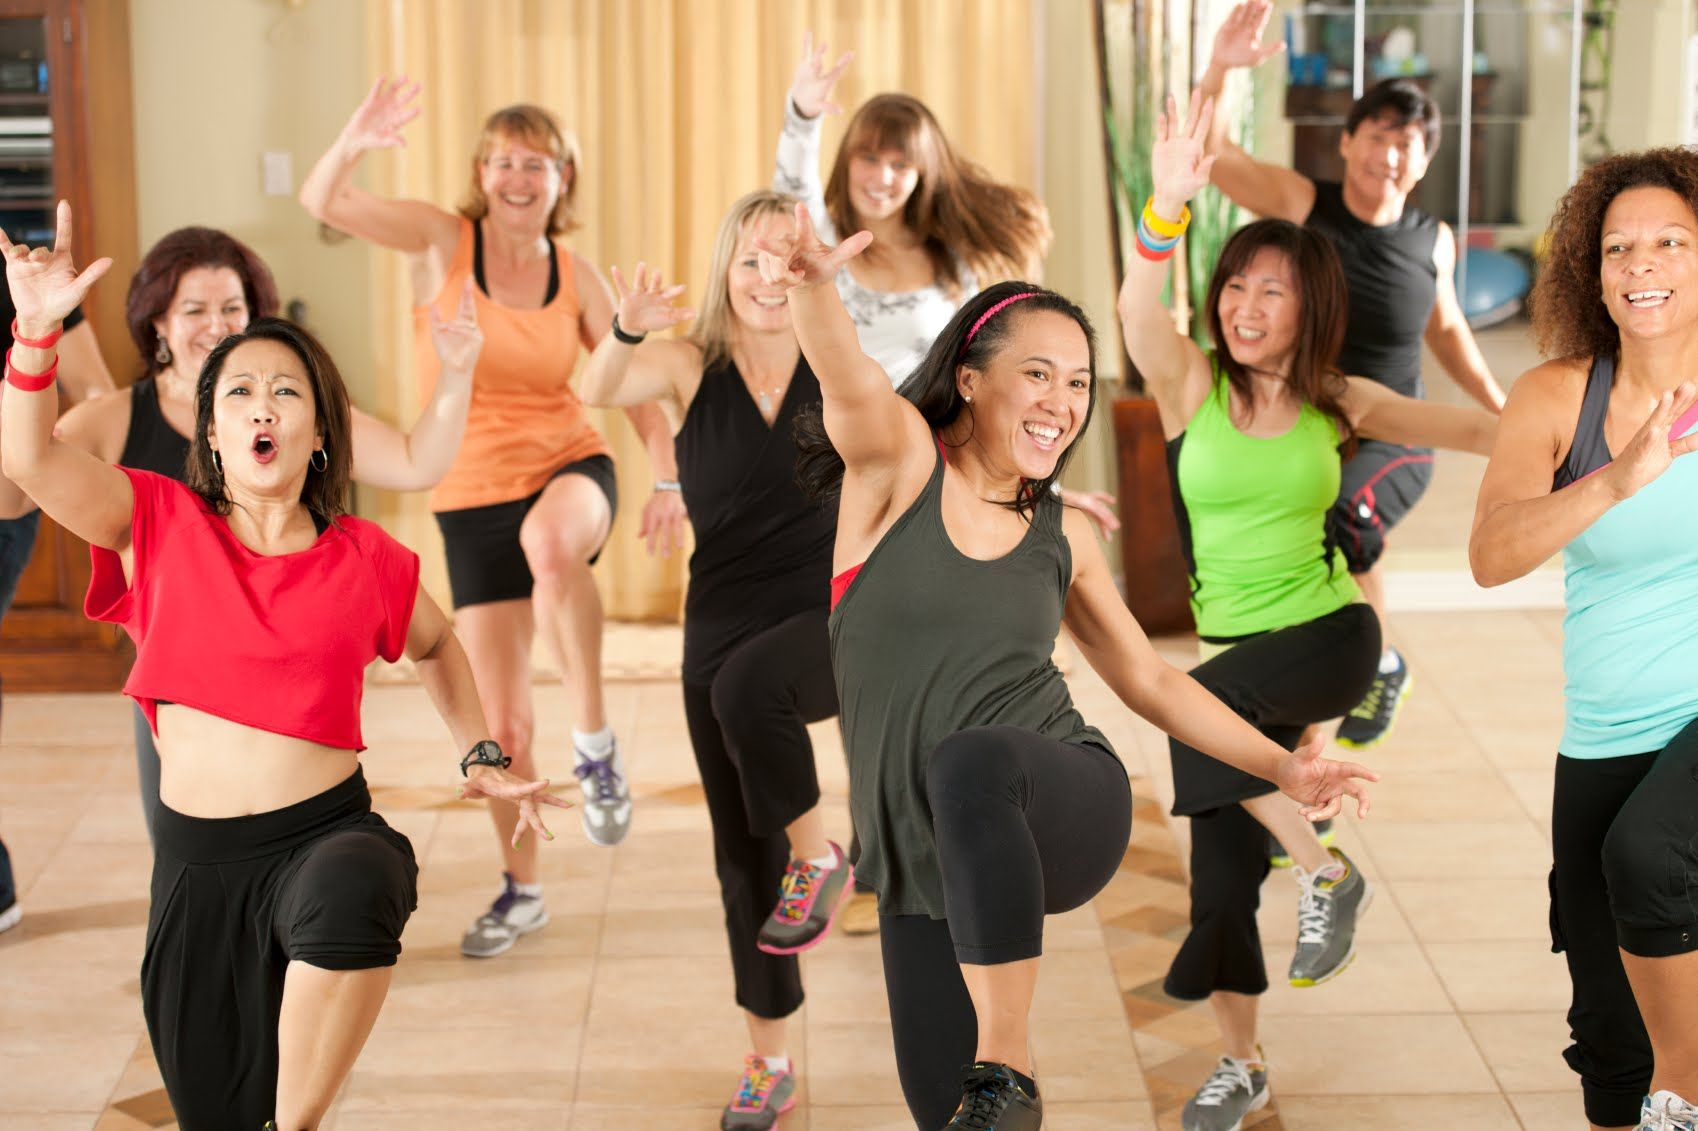 Find Zumba Classes In You Area Zumba Dance Workouts Dance Workout Belly Dancing For Beginners